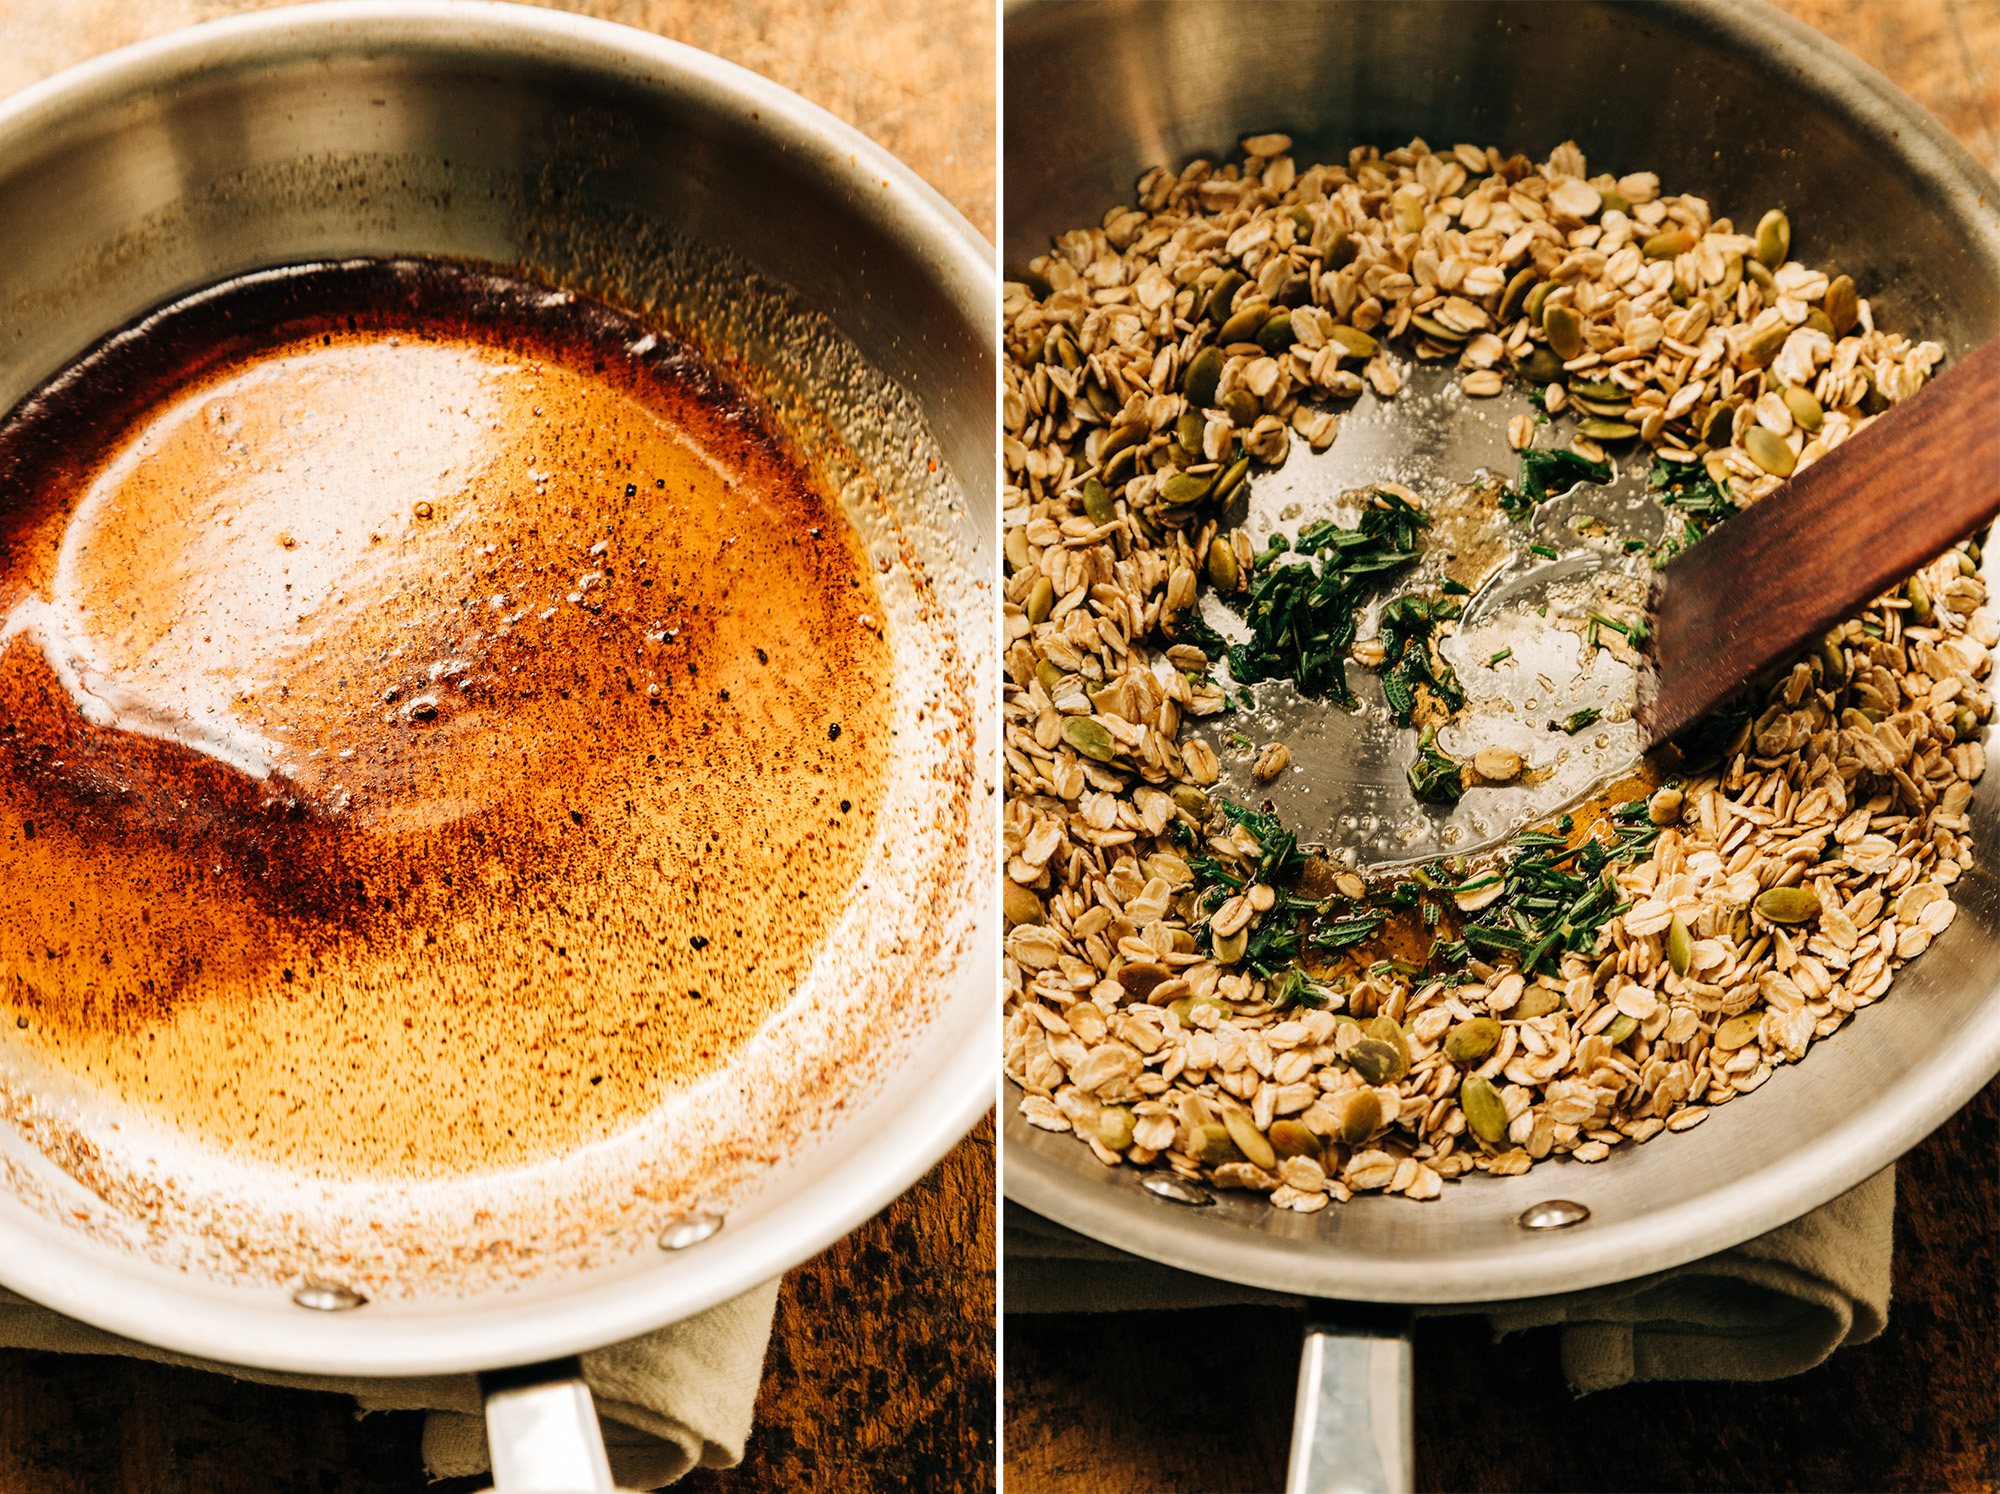 2 images show a spiced maple syrup being swirled in a sauté pan and some savoury rosemary granola being made in a sauté pan.